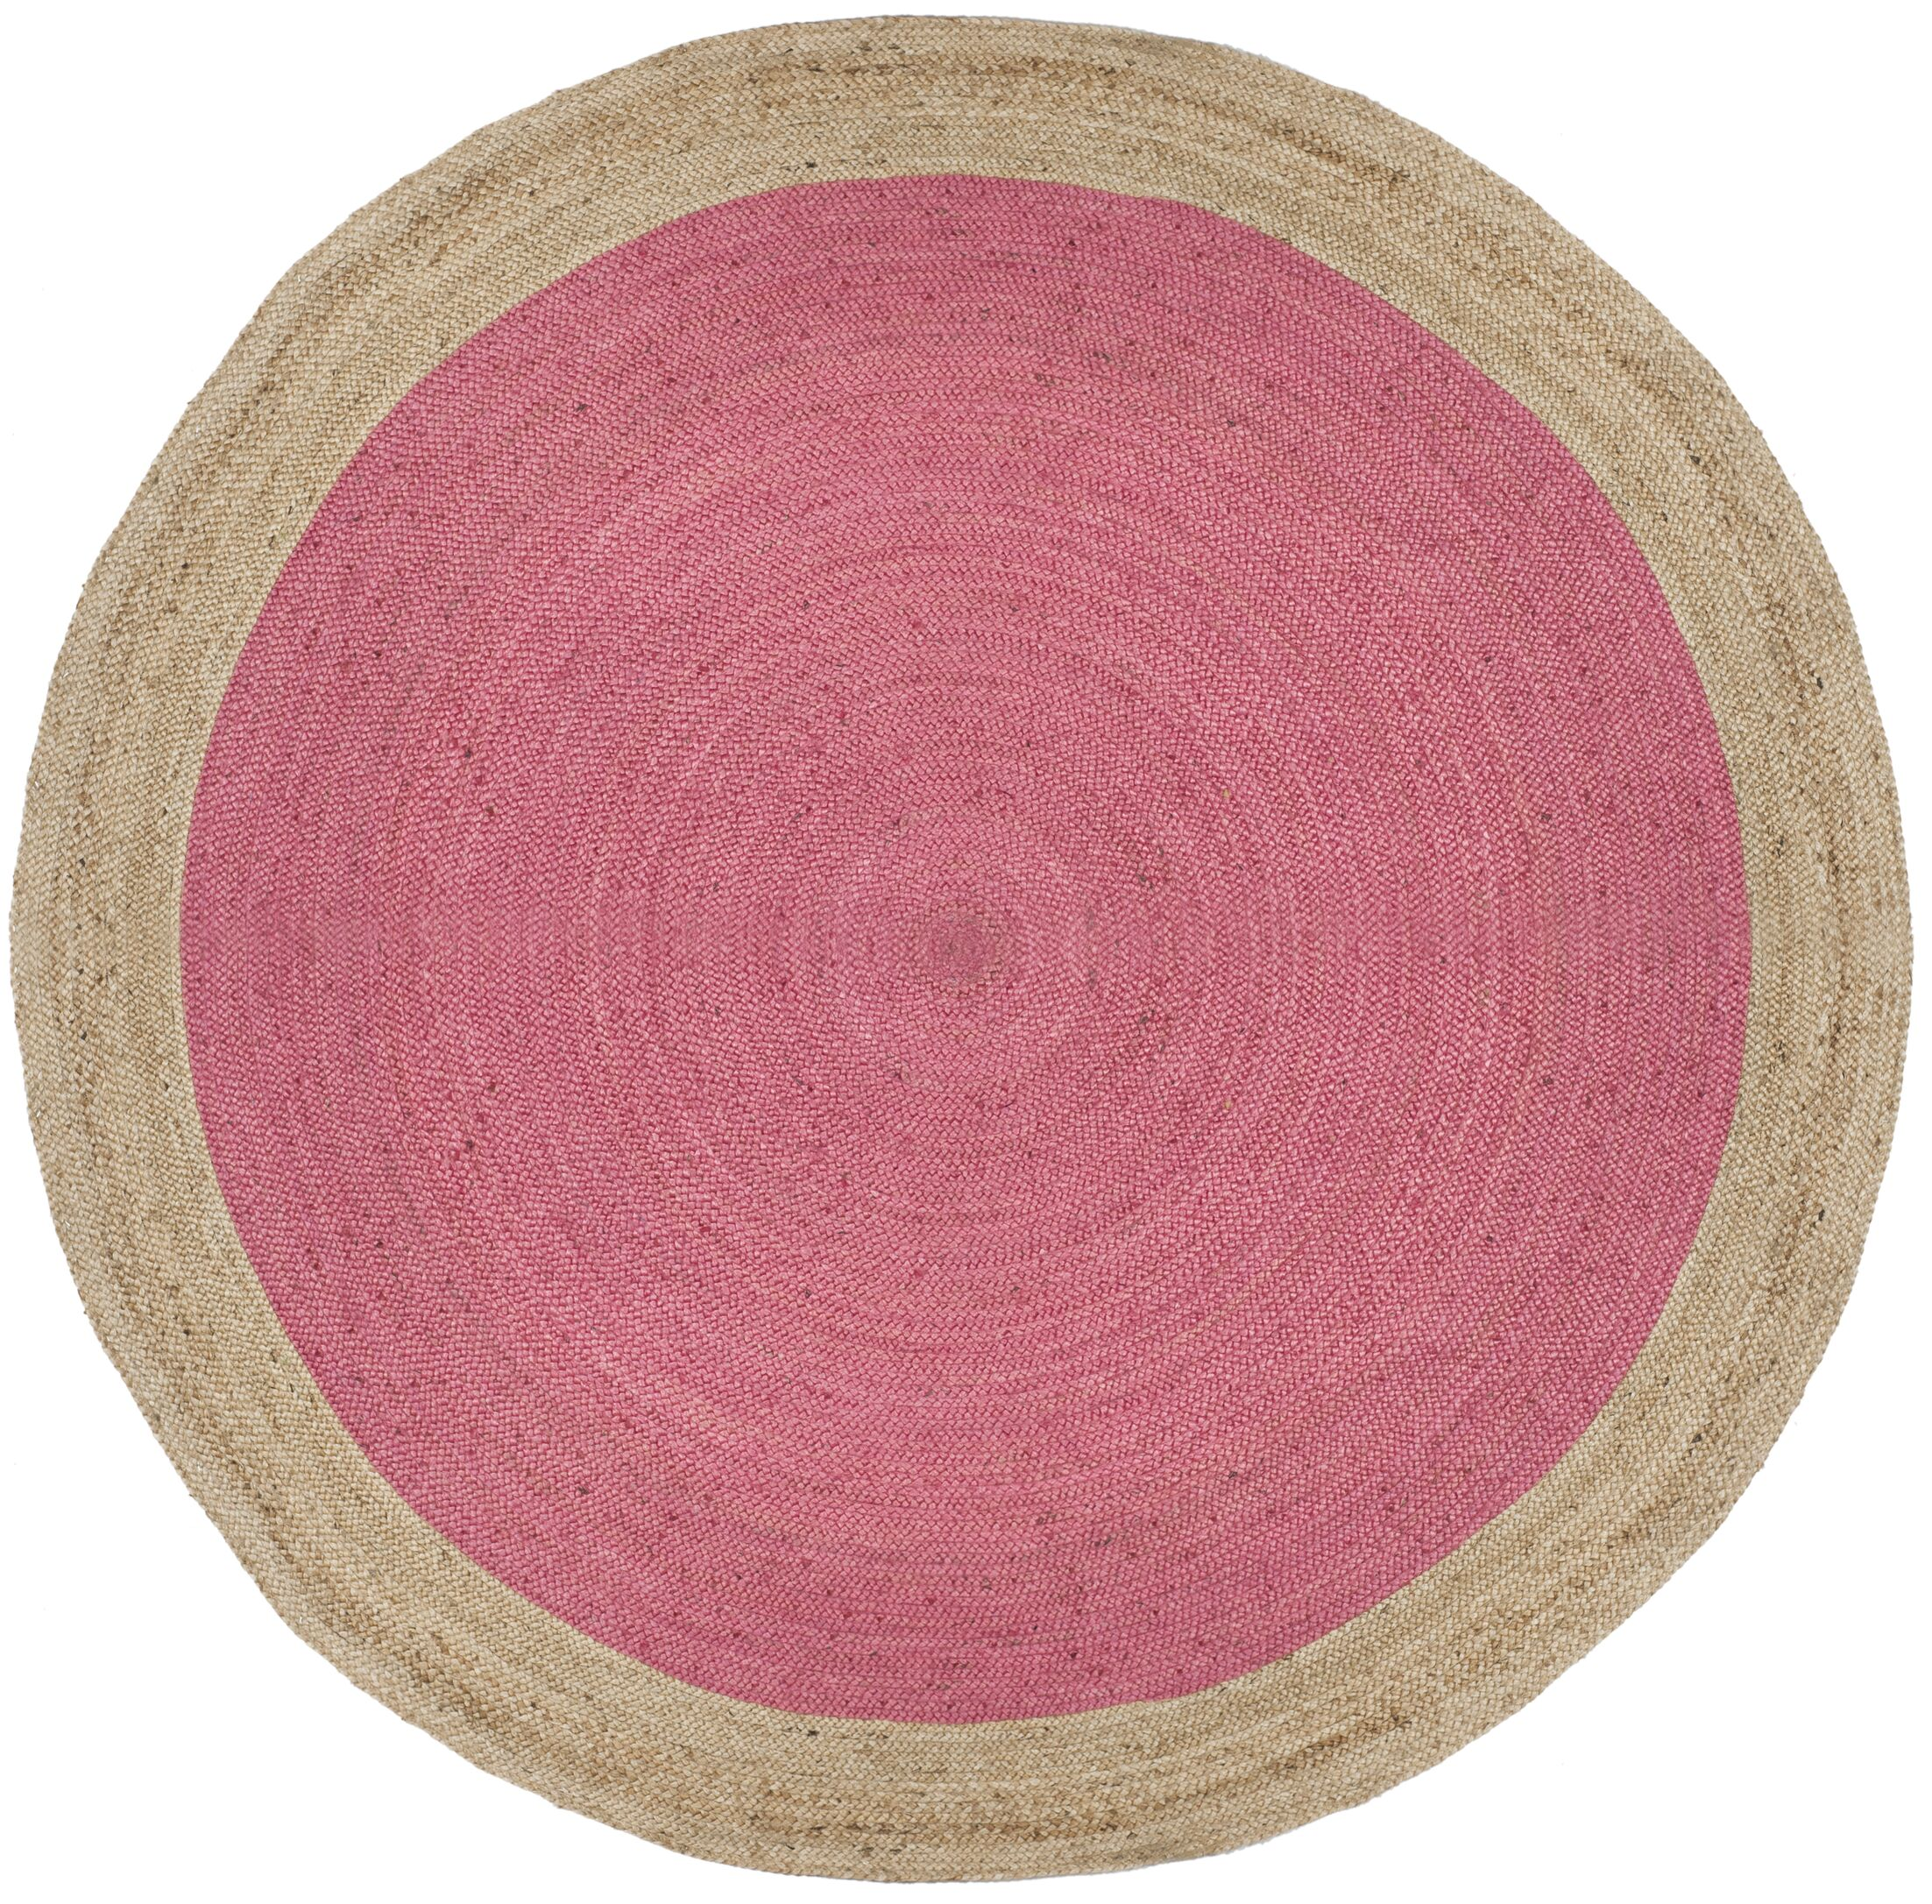 Cayla Fiber Hand-Woven Pink/Natural Area Rug Rug Size: Round 8'